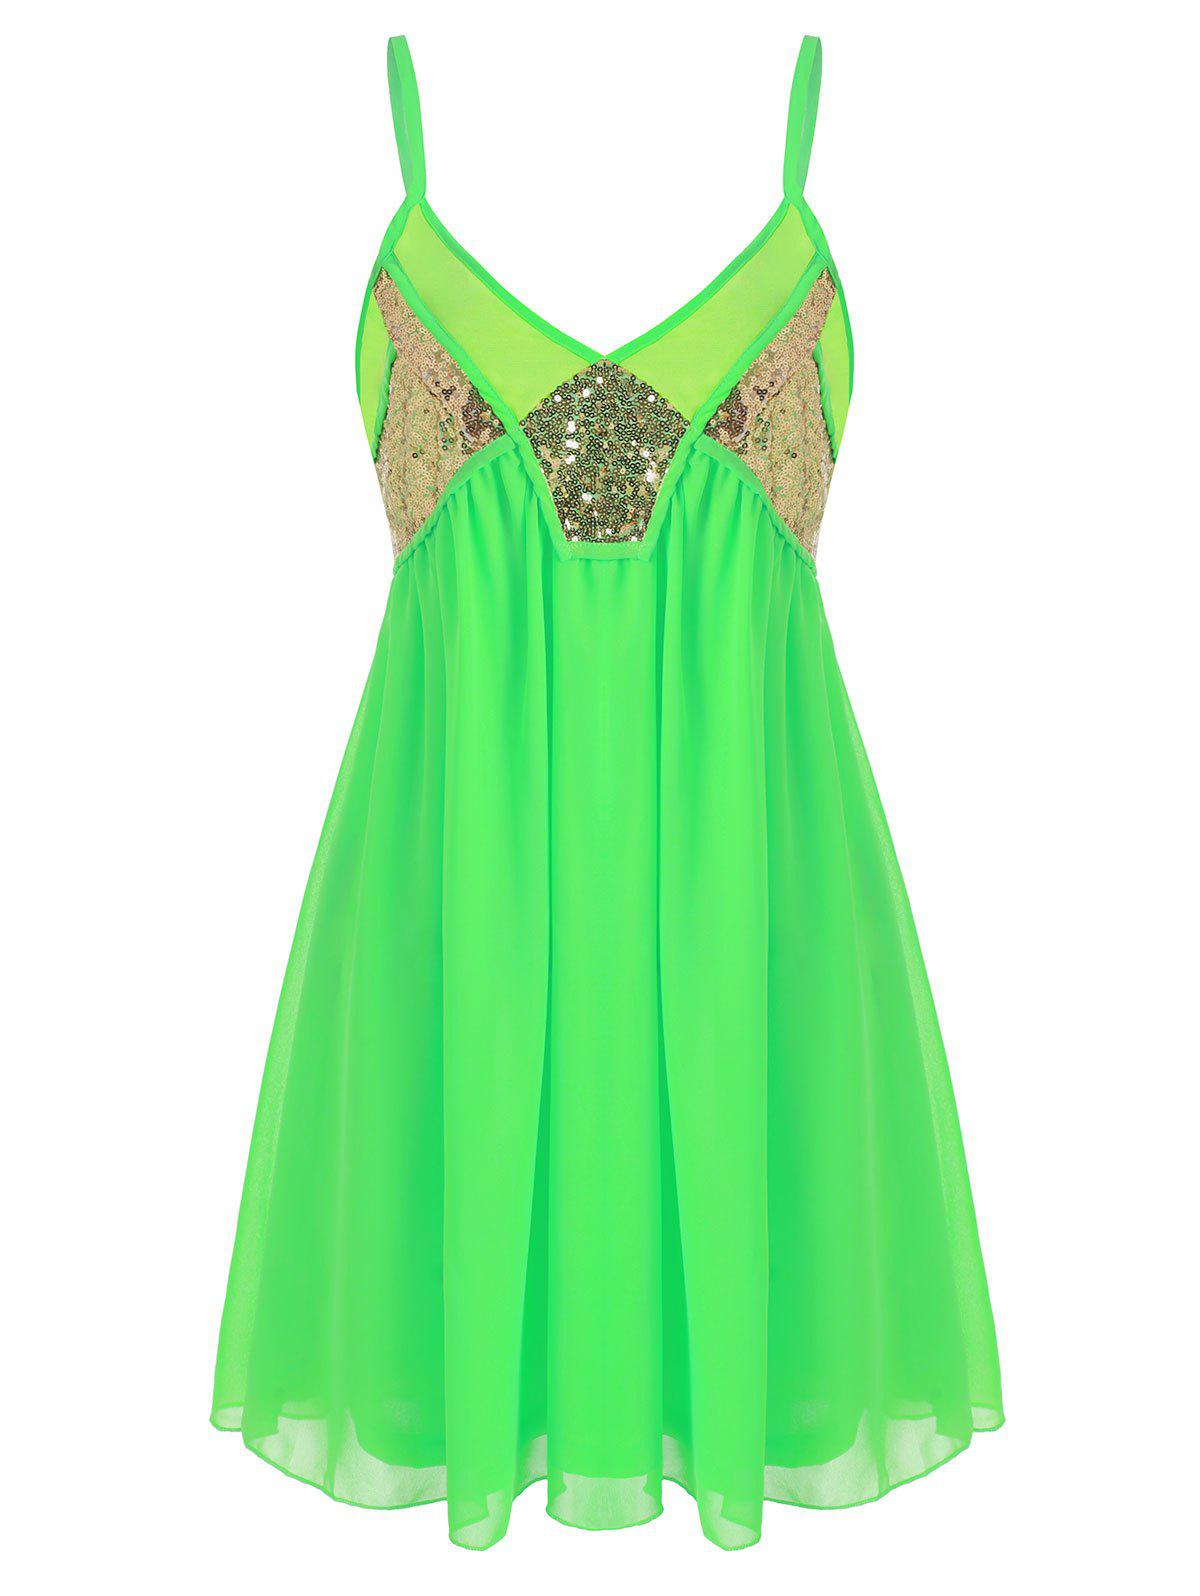 Sequined Neon Mini Slip Party Dress - GREEN L